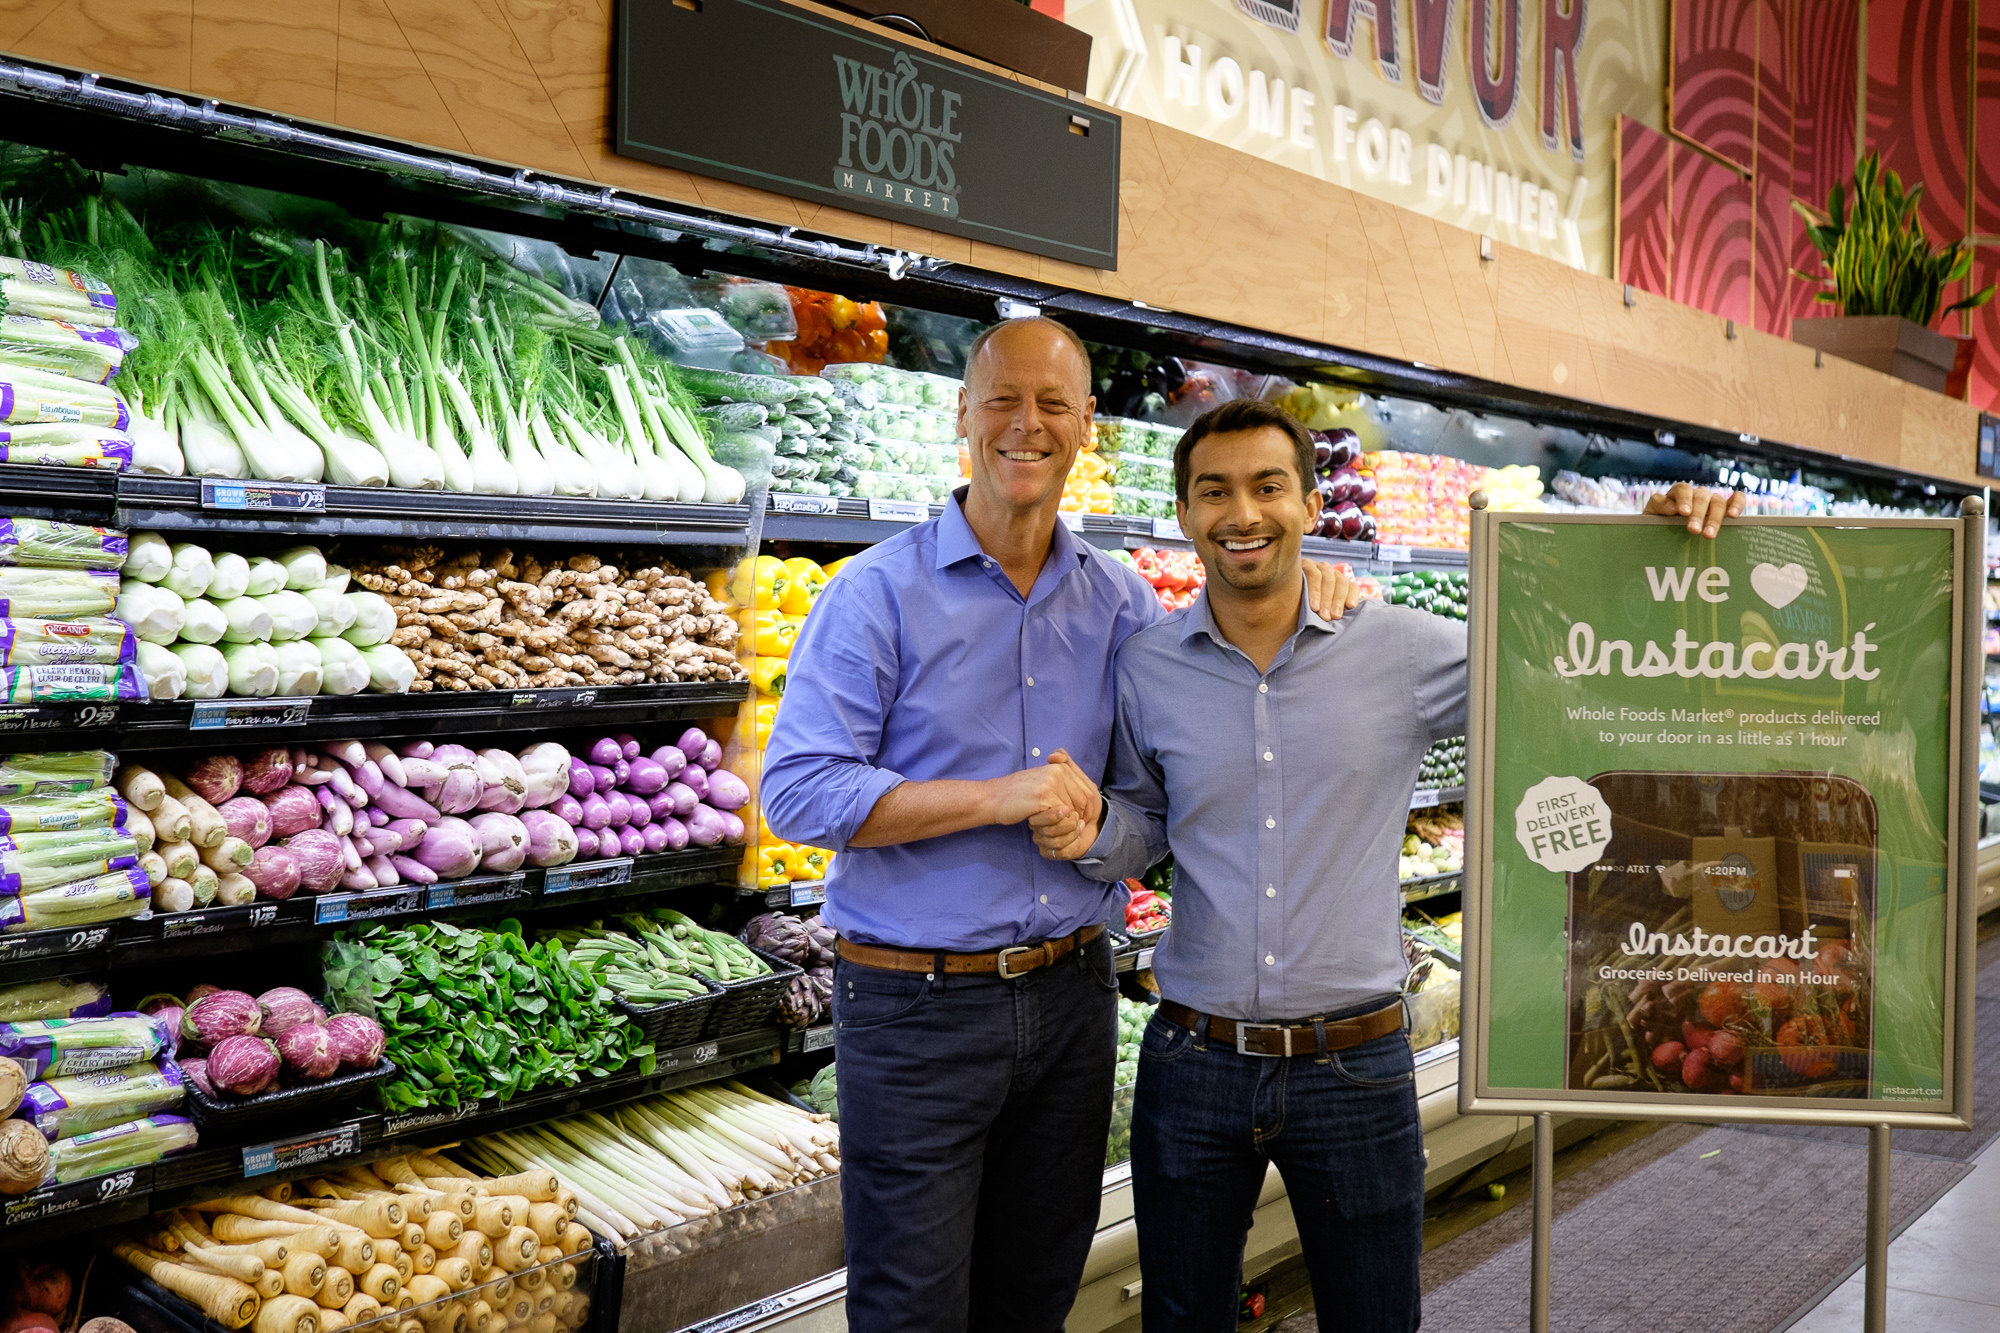 Whole Foods and Instacart turn up the heat in the delivery